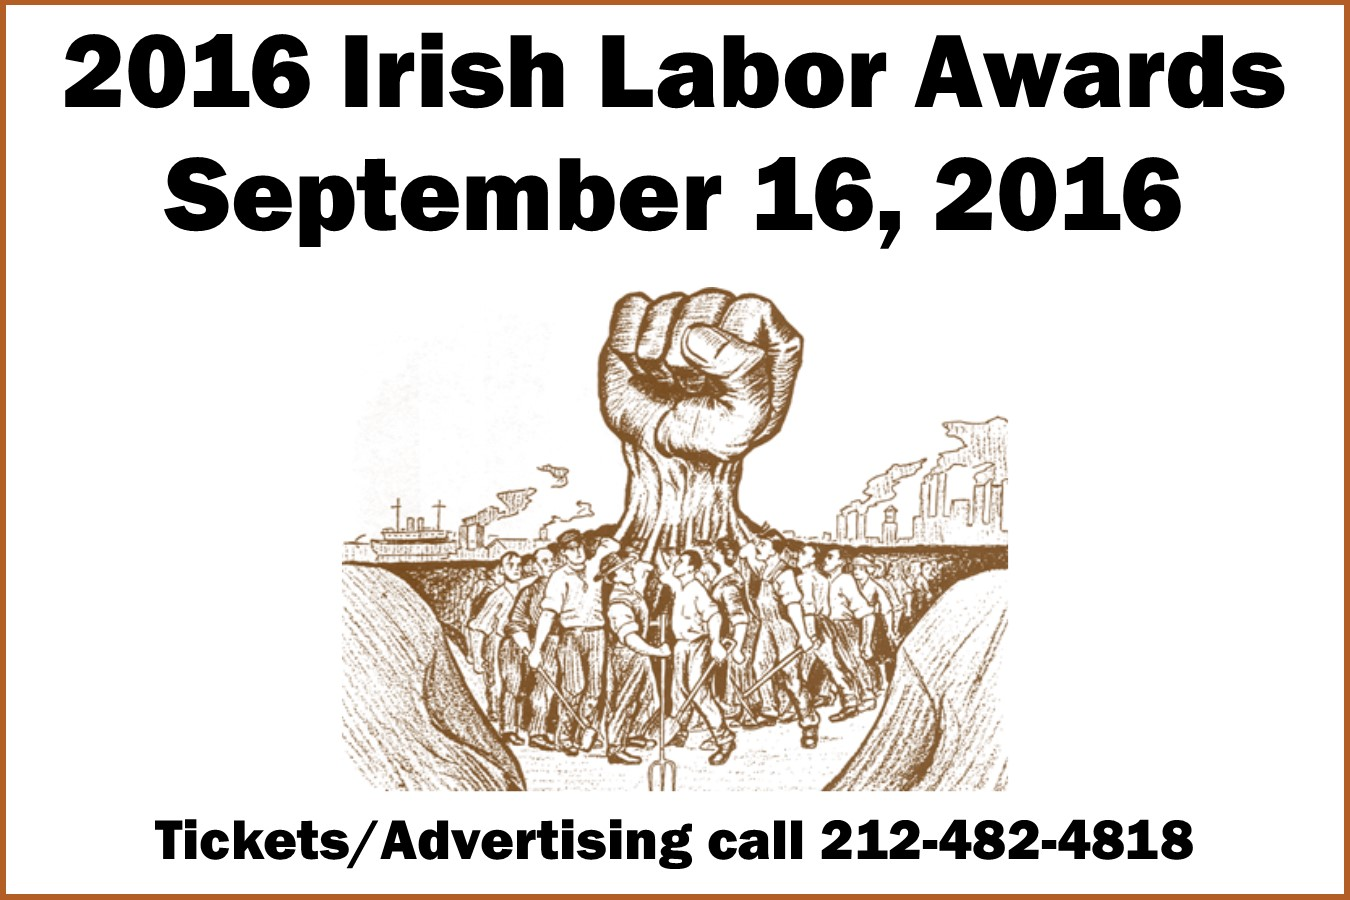 2016 Irish Labor